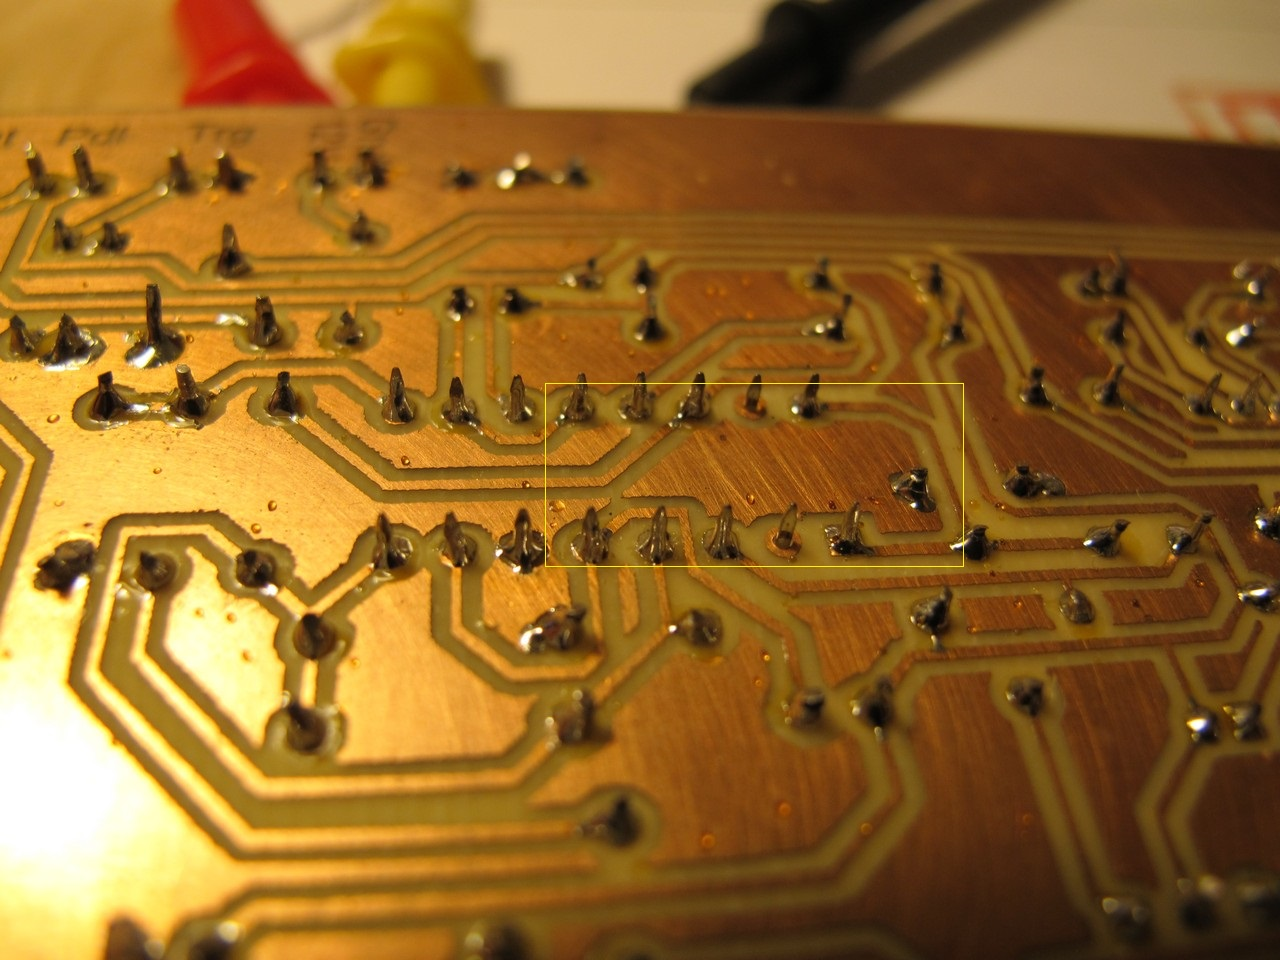 Syntom II - ground fill PCB errror